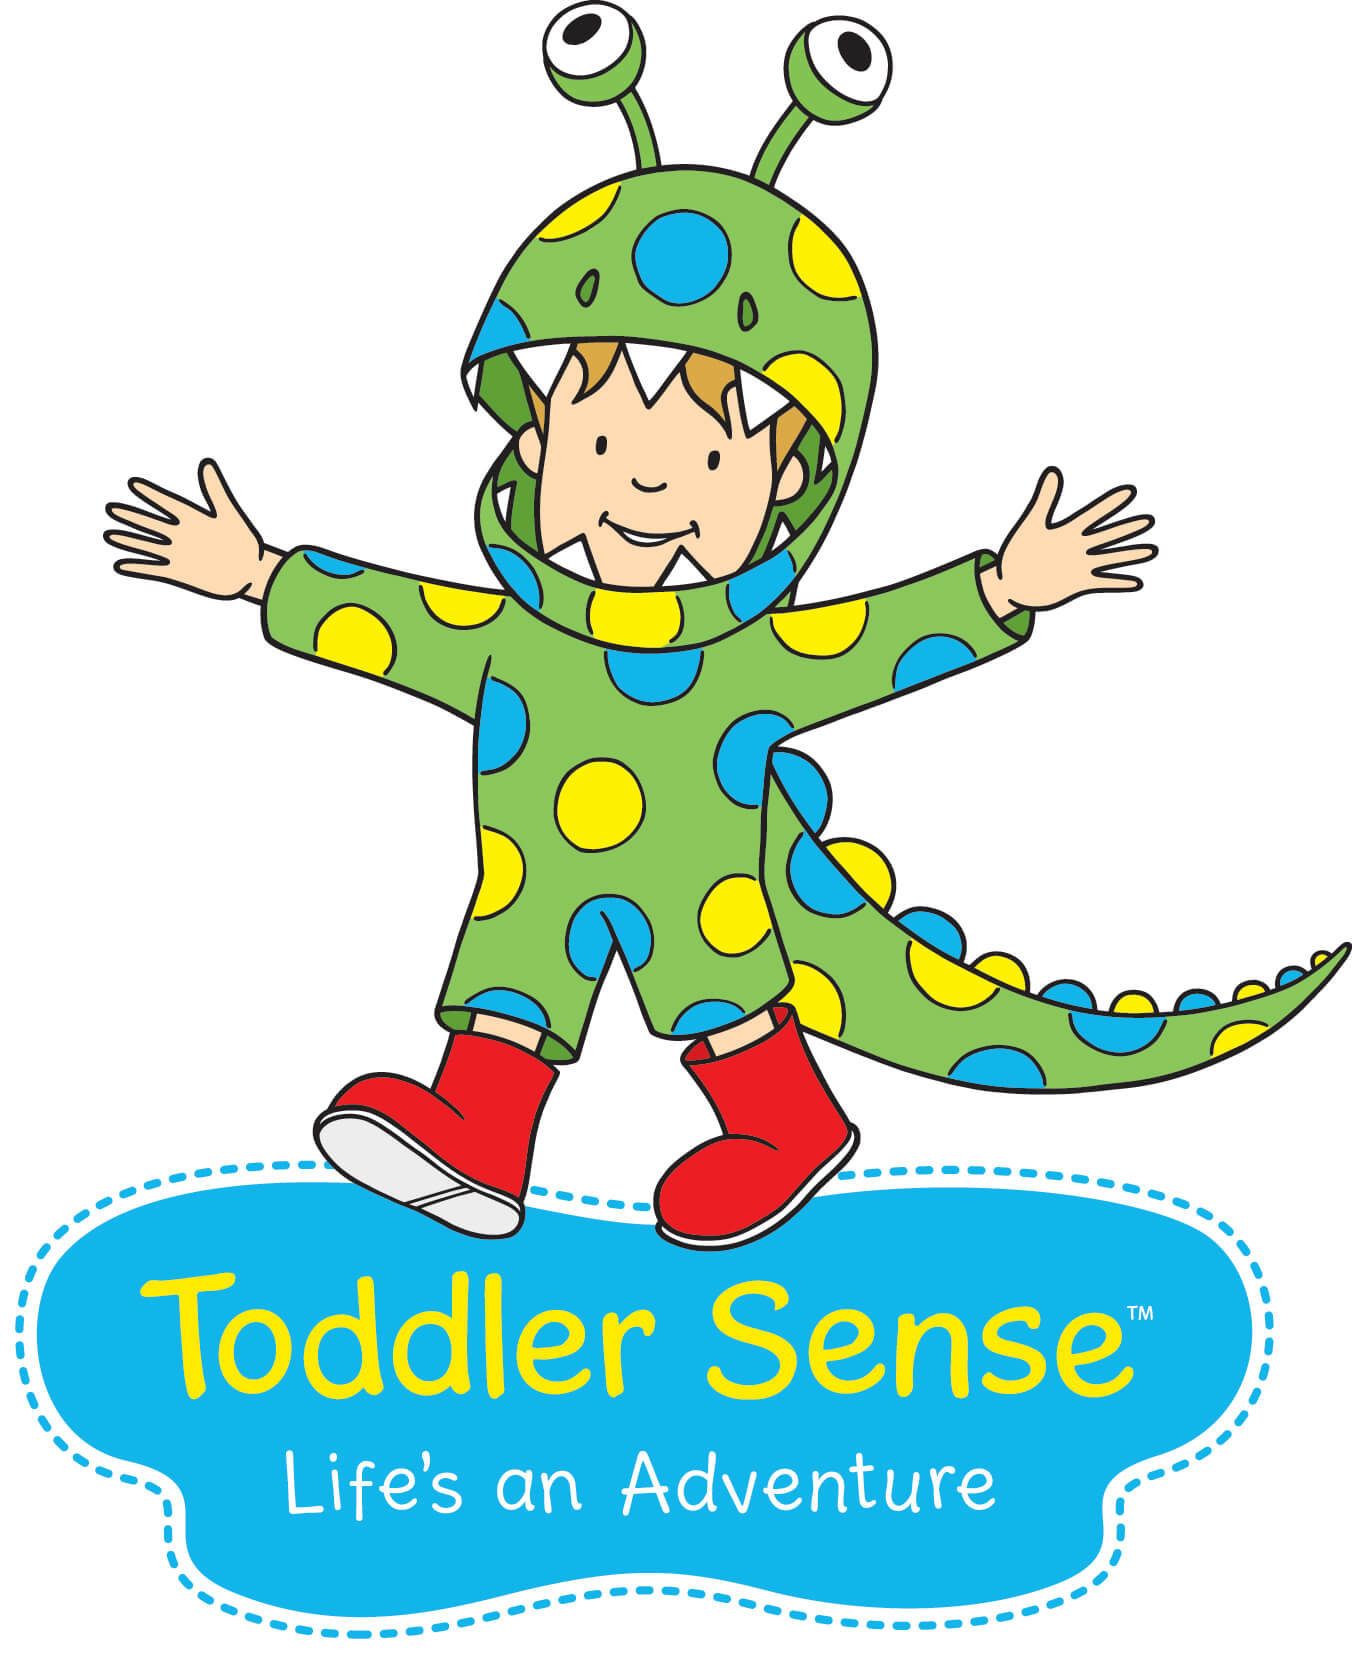 Toddler Sense's logo